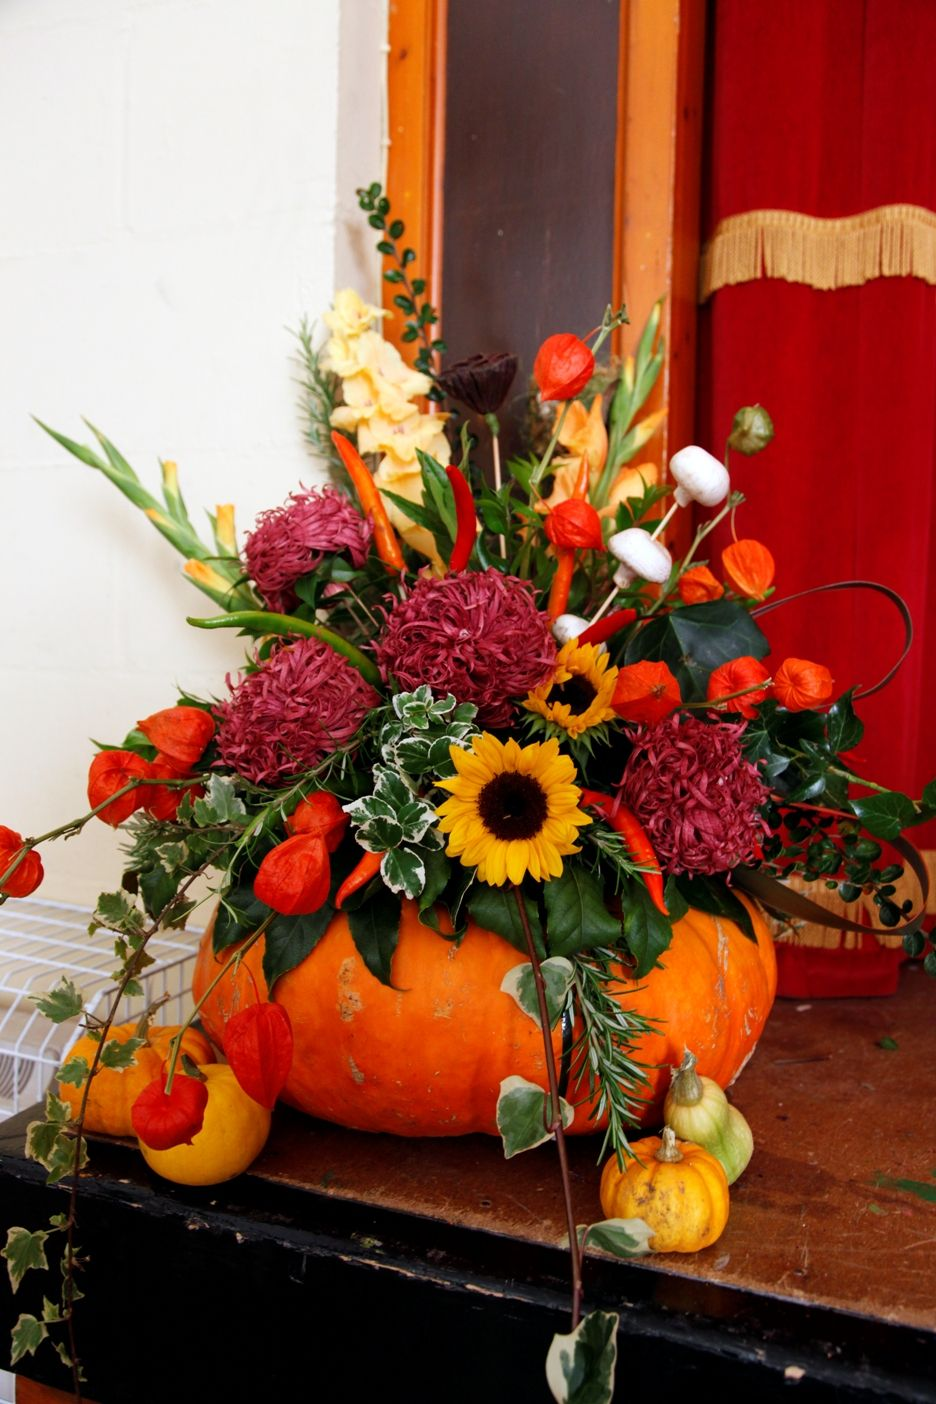 Share for Autumn flower decoration